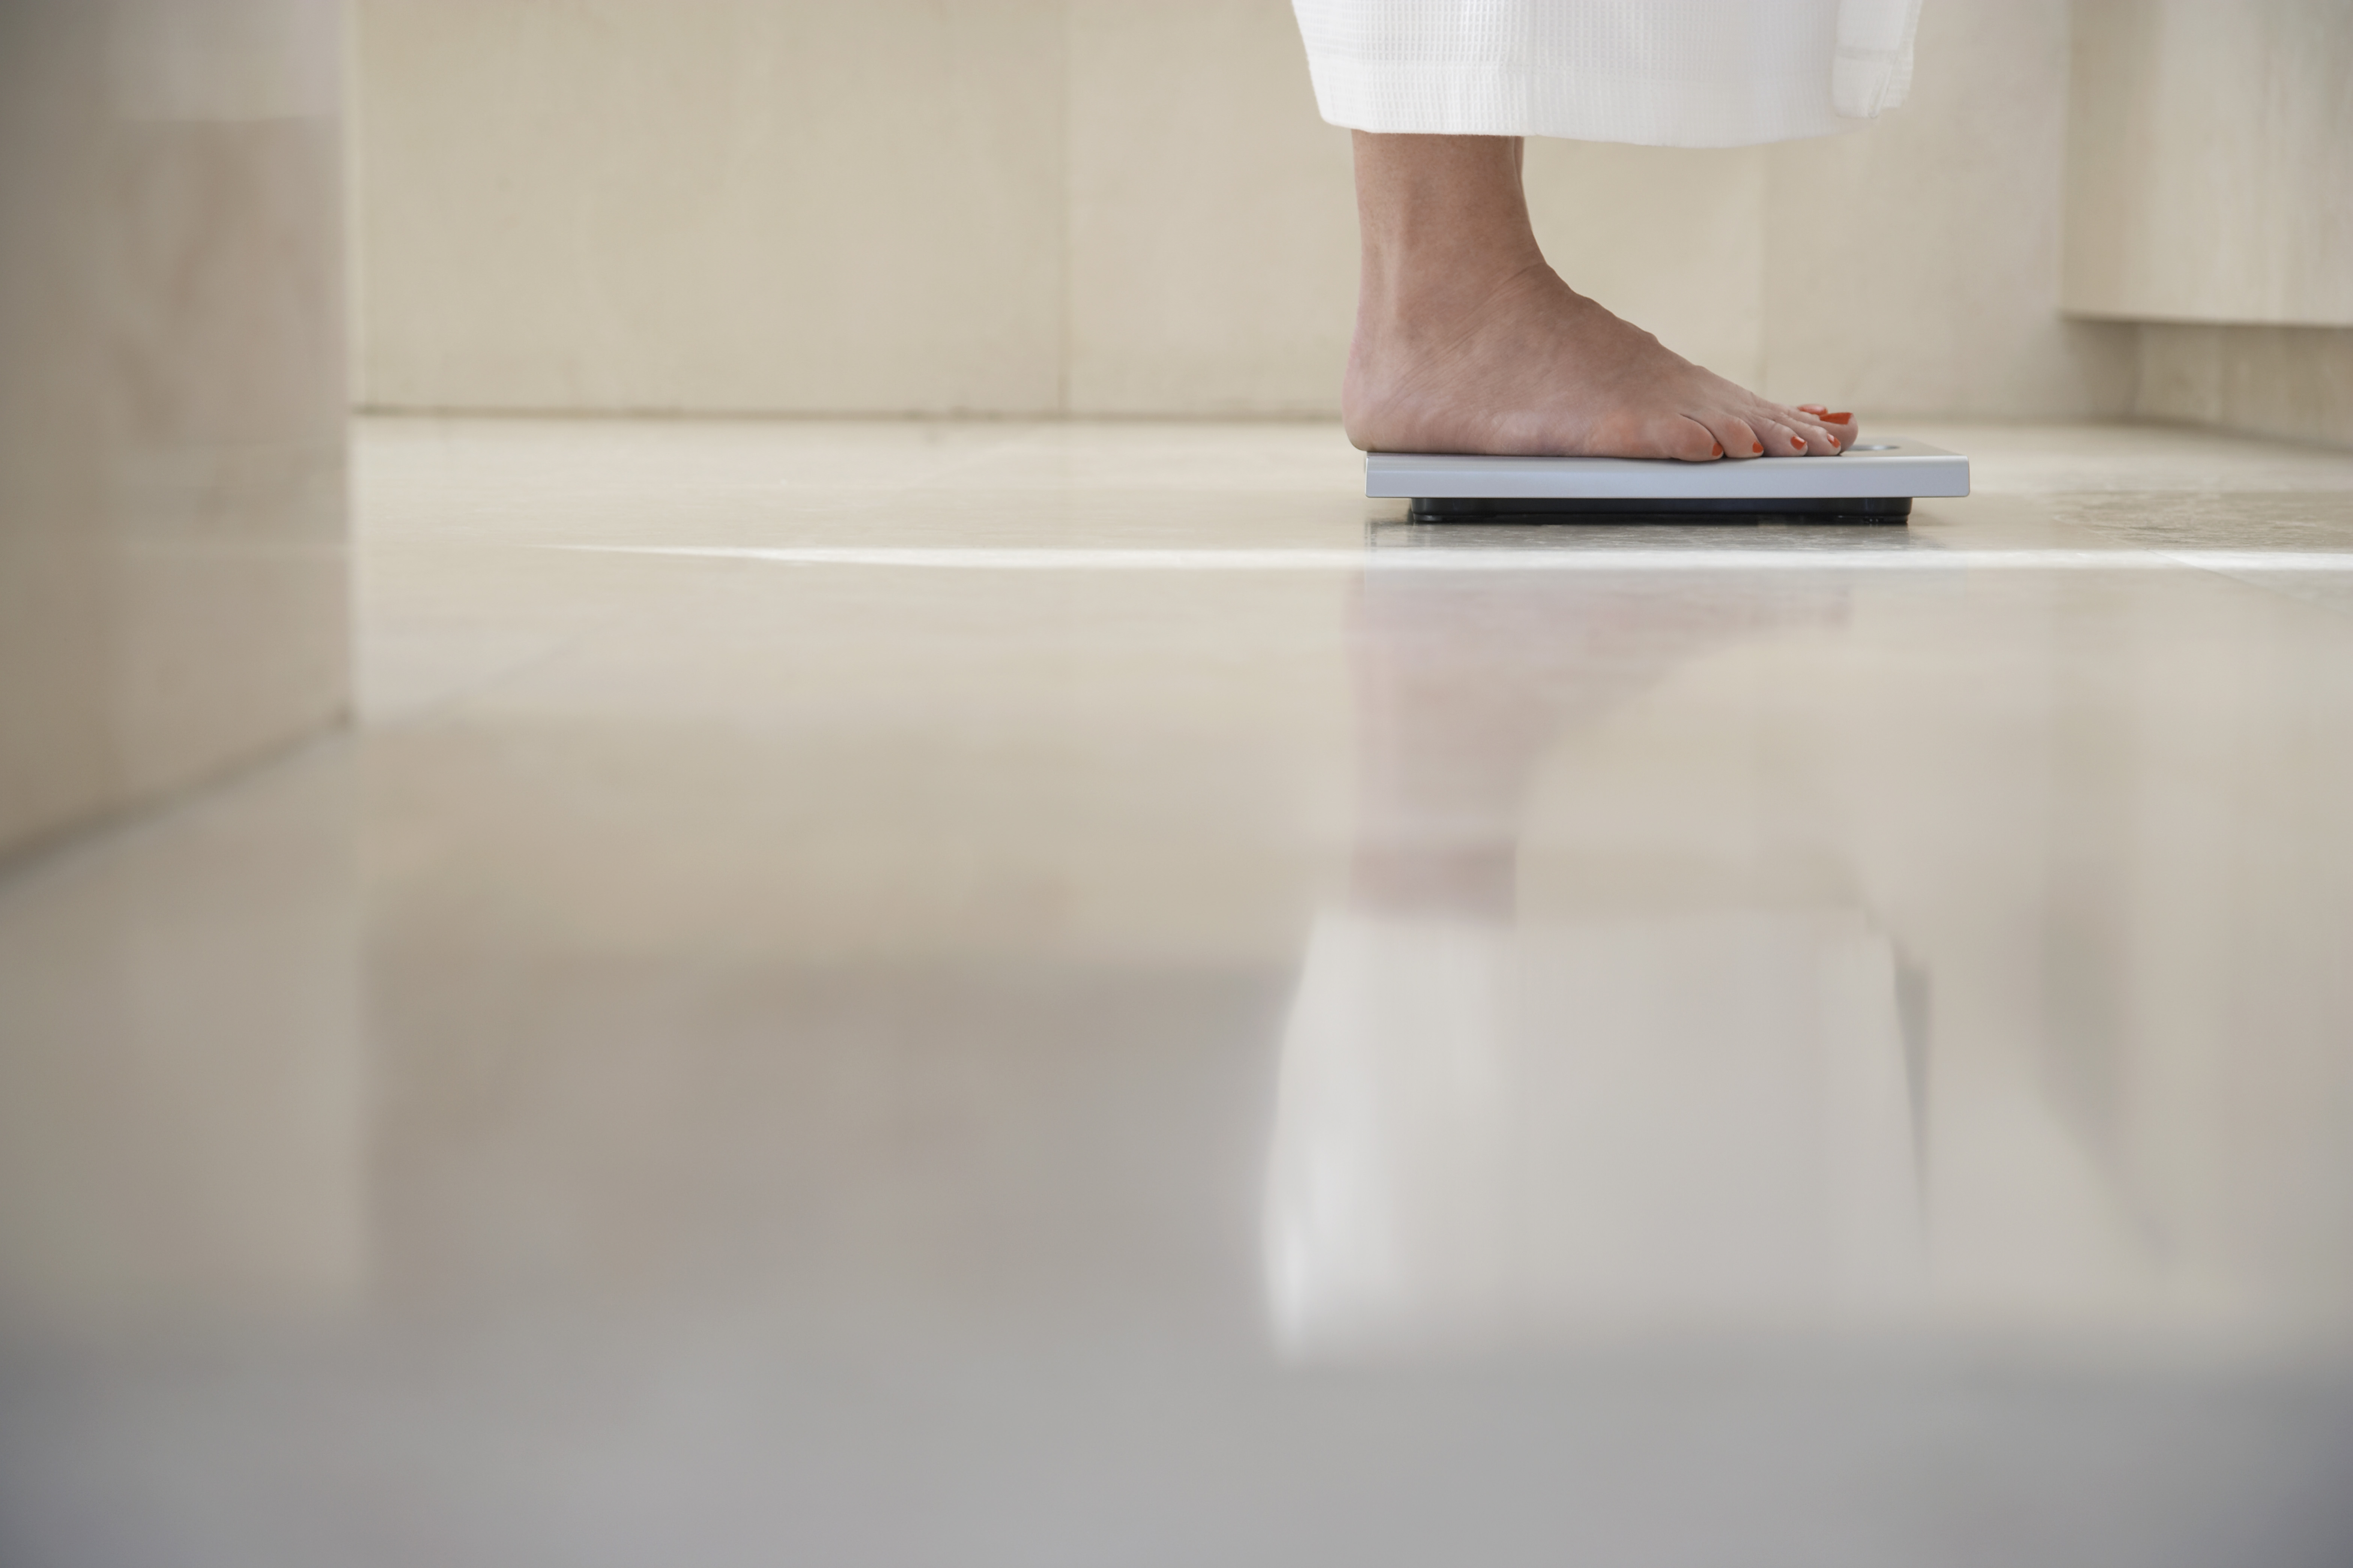 Woman on a bathroom scale. Only her feet are visible.